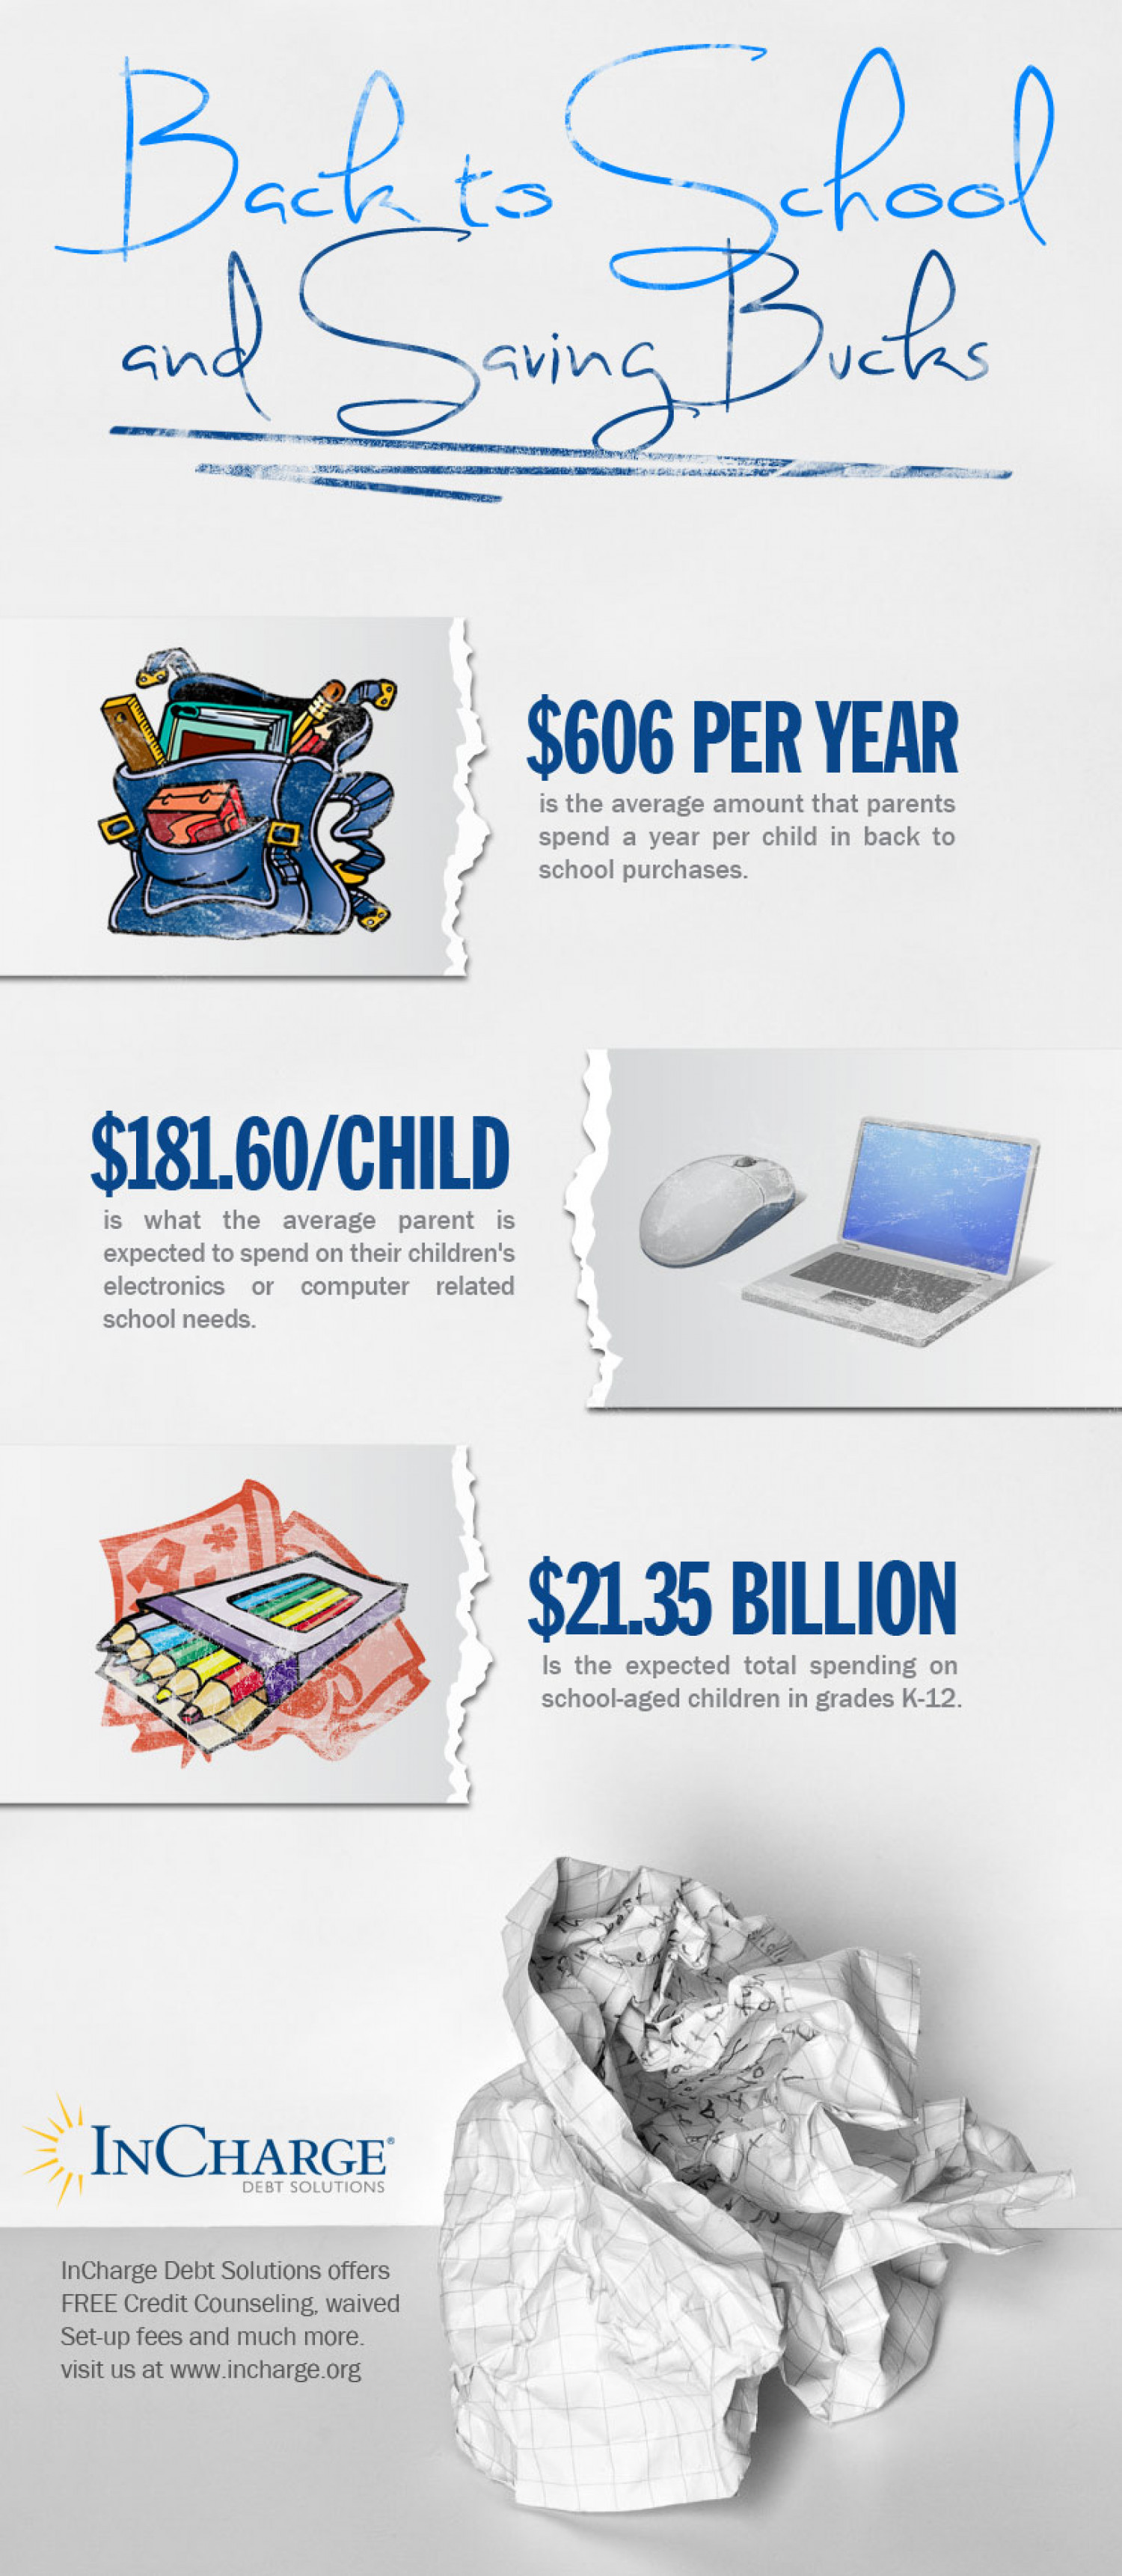 Personal Finance - Spending on School-Aged Children Infographic